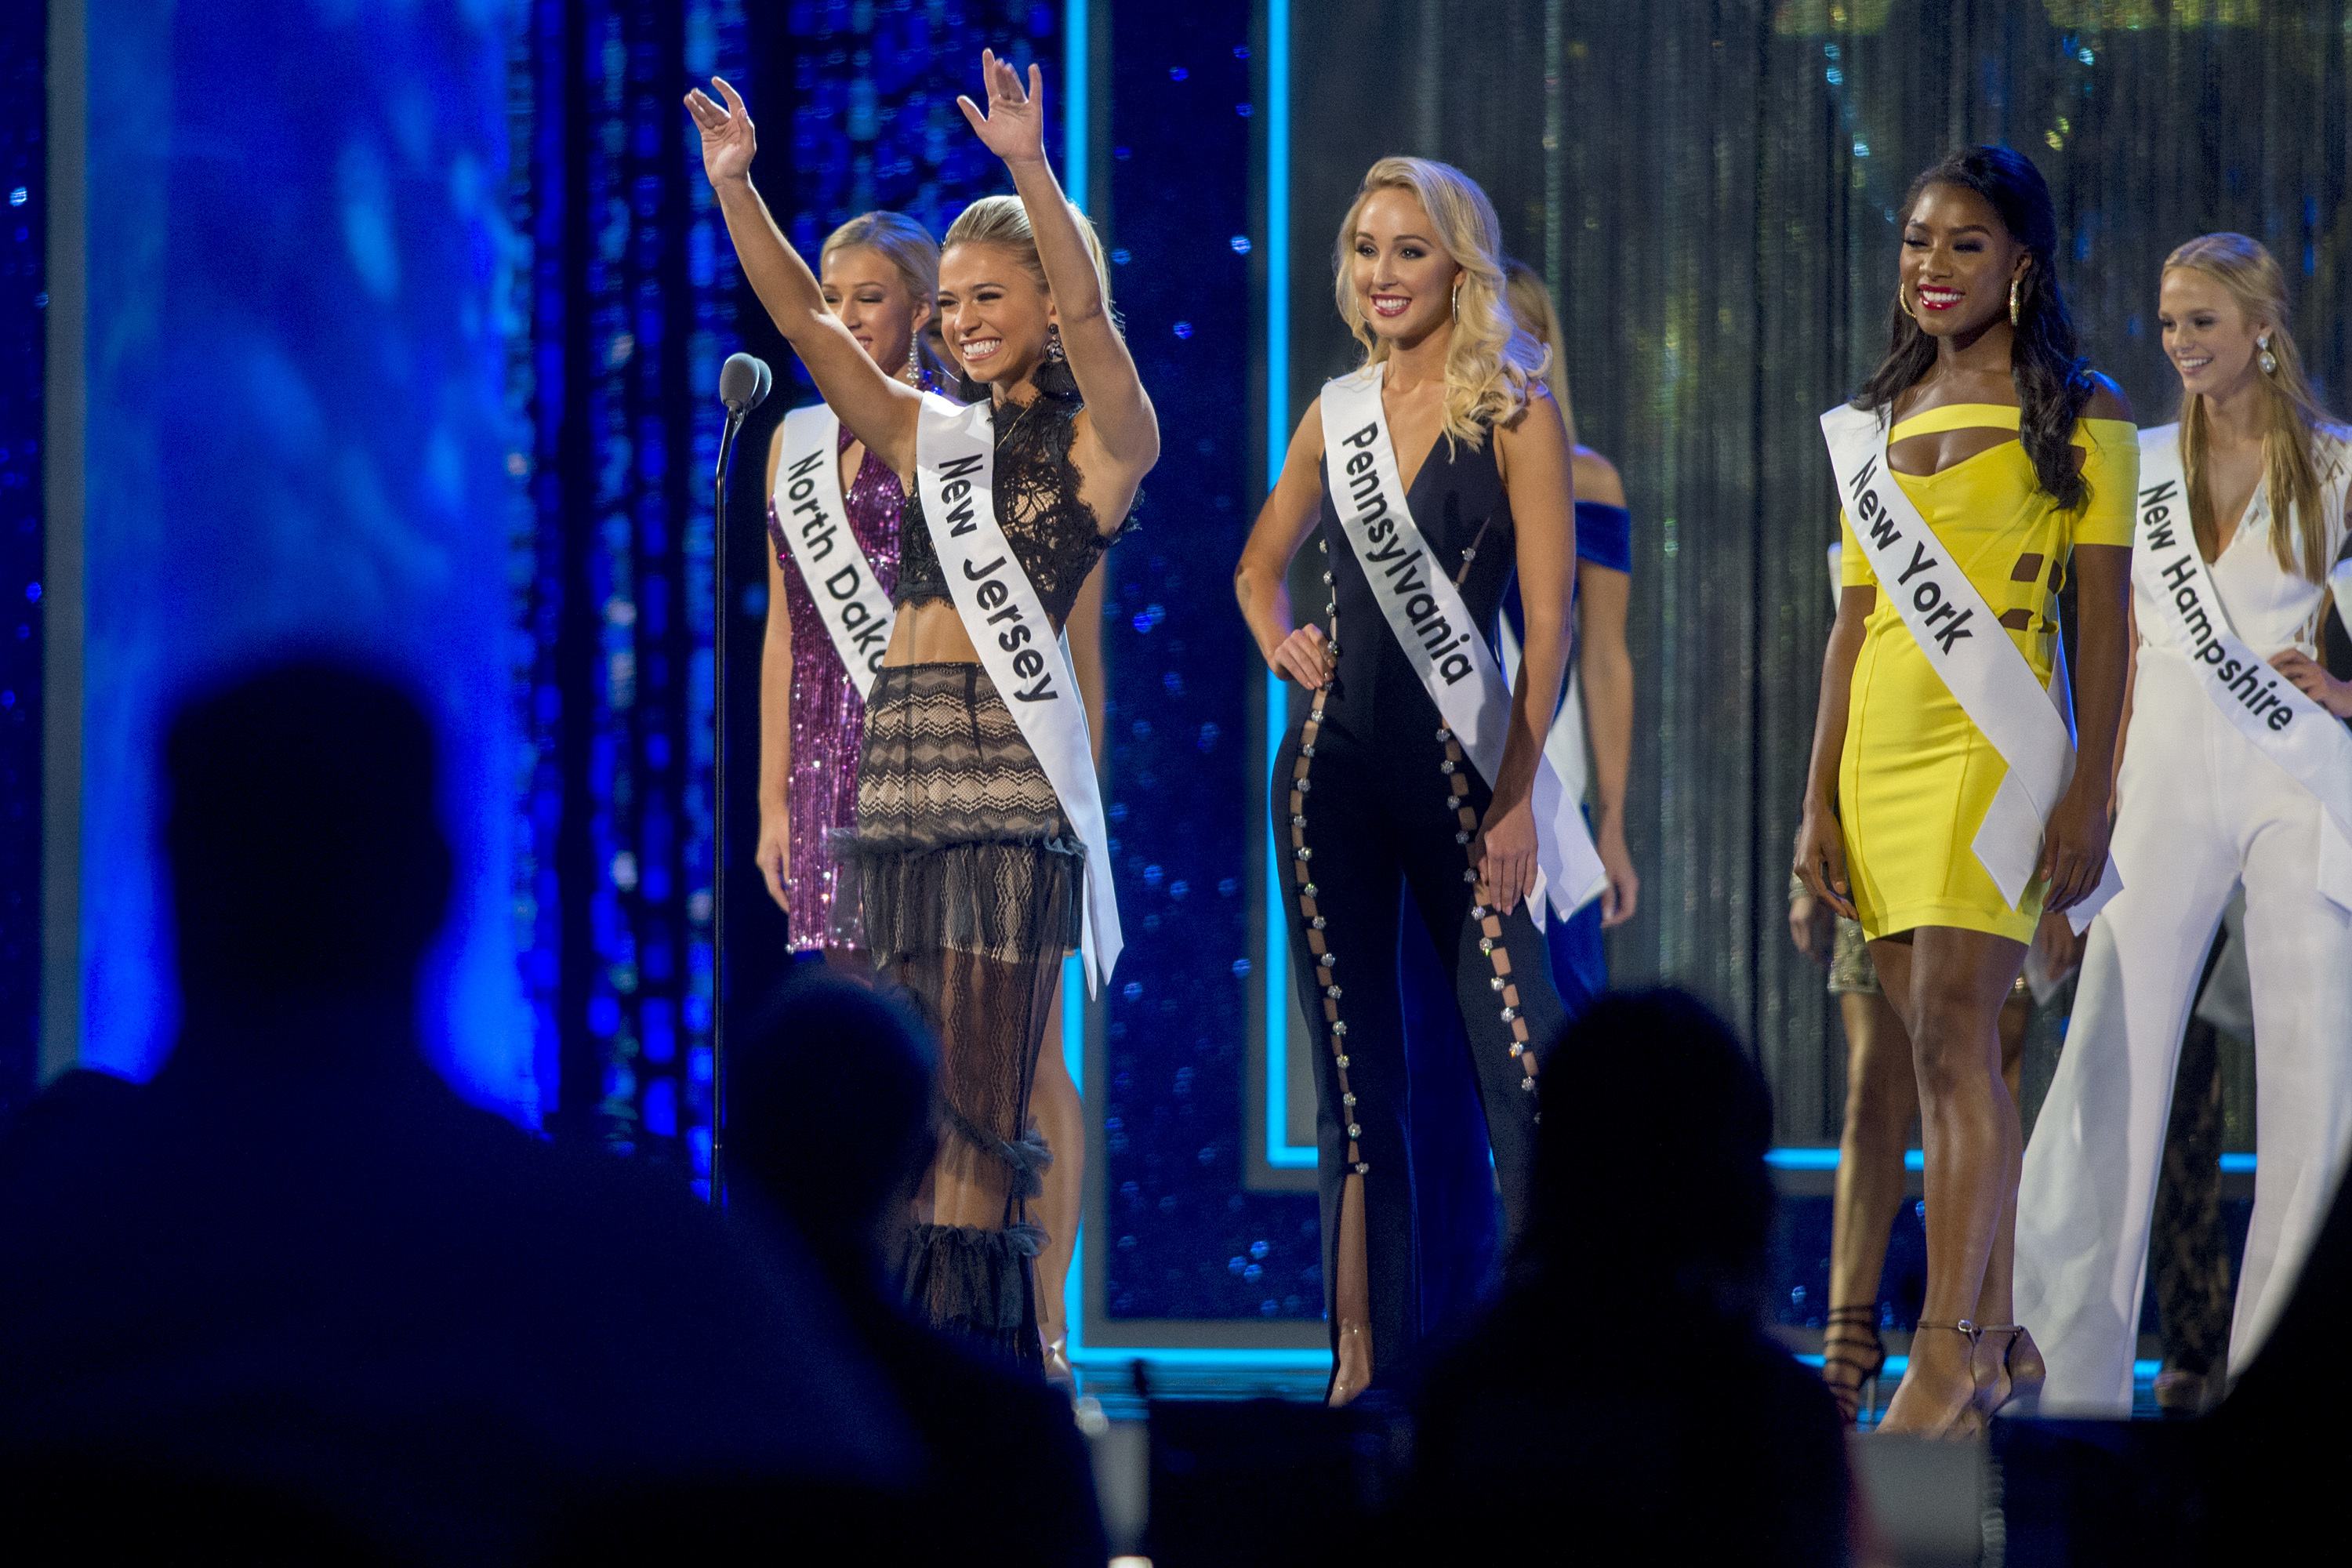 Miss New Jersey Jaime Gialloreto waves to the audience during the opening of the first preliminary night of the Miss America 2019 competition at Boardwalk Hall in Atlantic City, September 5, 2018. Behind her are Miss North Dakota Katie Olson (from left) Miss Pennsylvania Kayla Repasky, Miss New York Nia Franklin, and Miss New Hampshire Marisa Moorhouse.